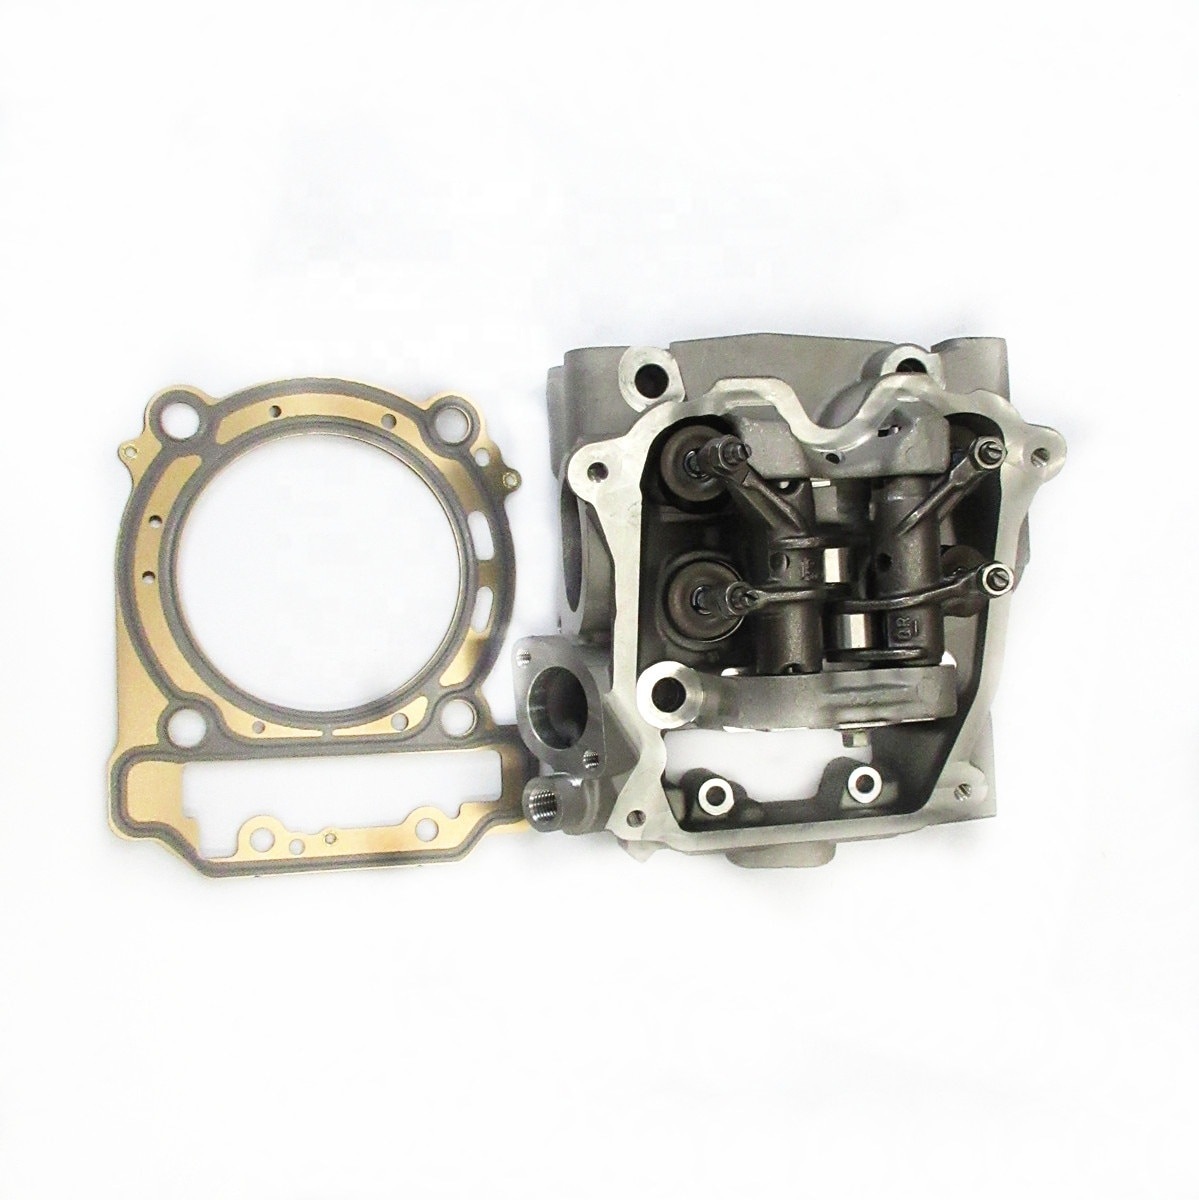 Cylinder head for Can-Am BRP 1000 ATV side by side